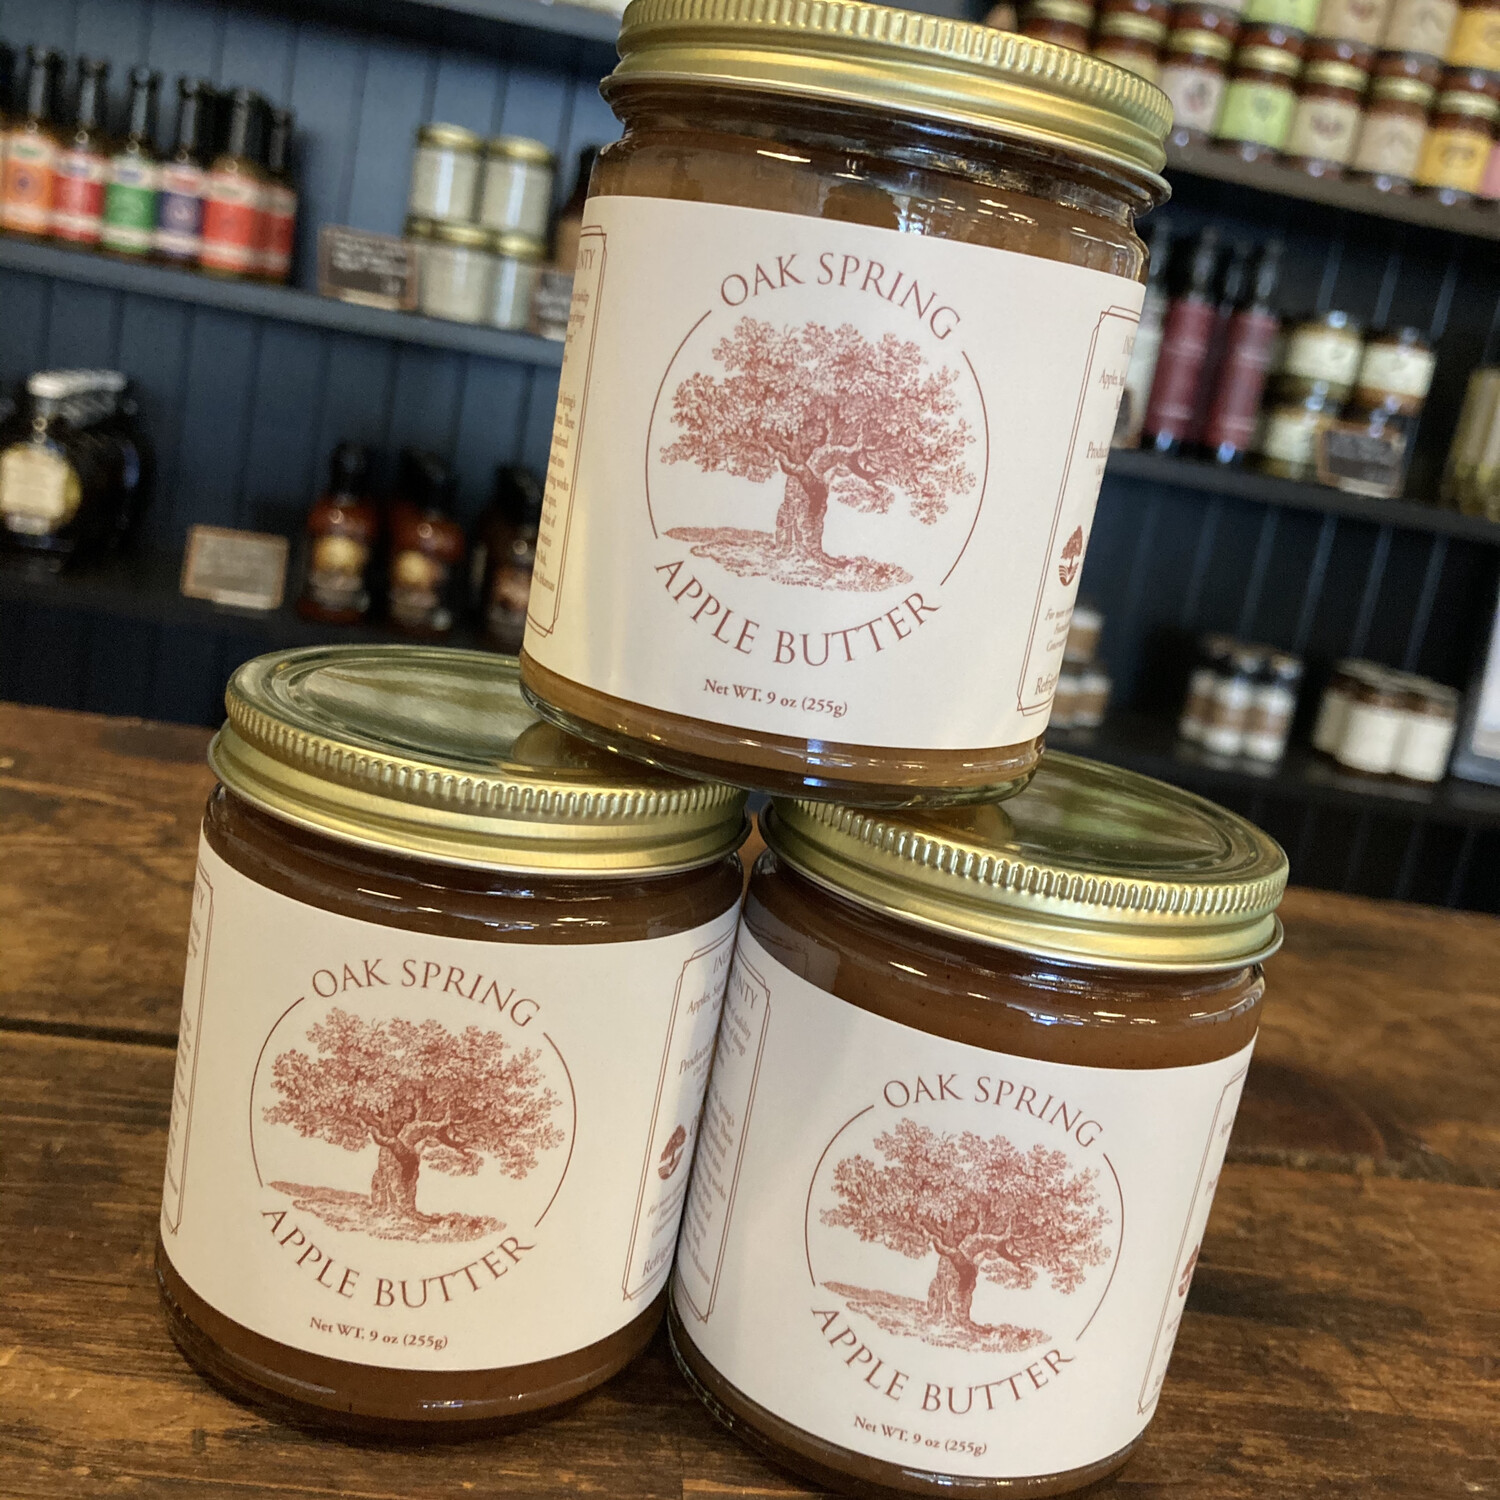 Oak Spring Apple Butter